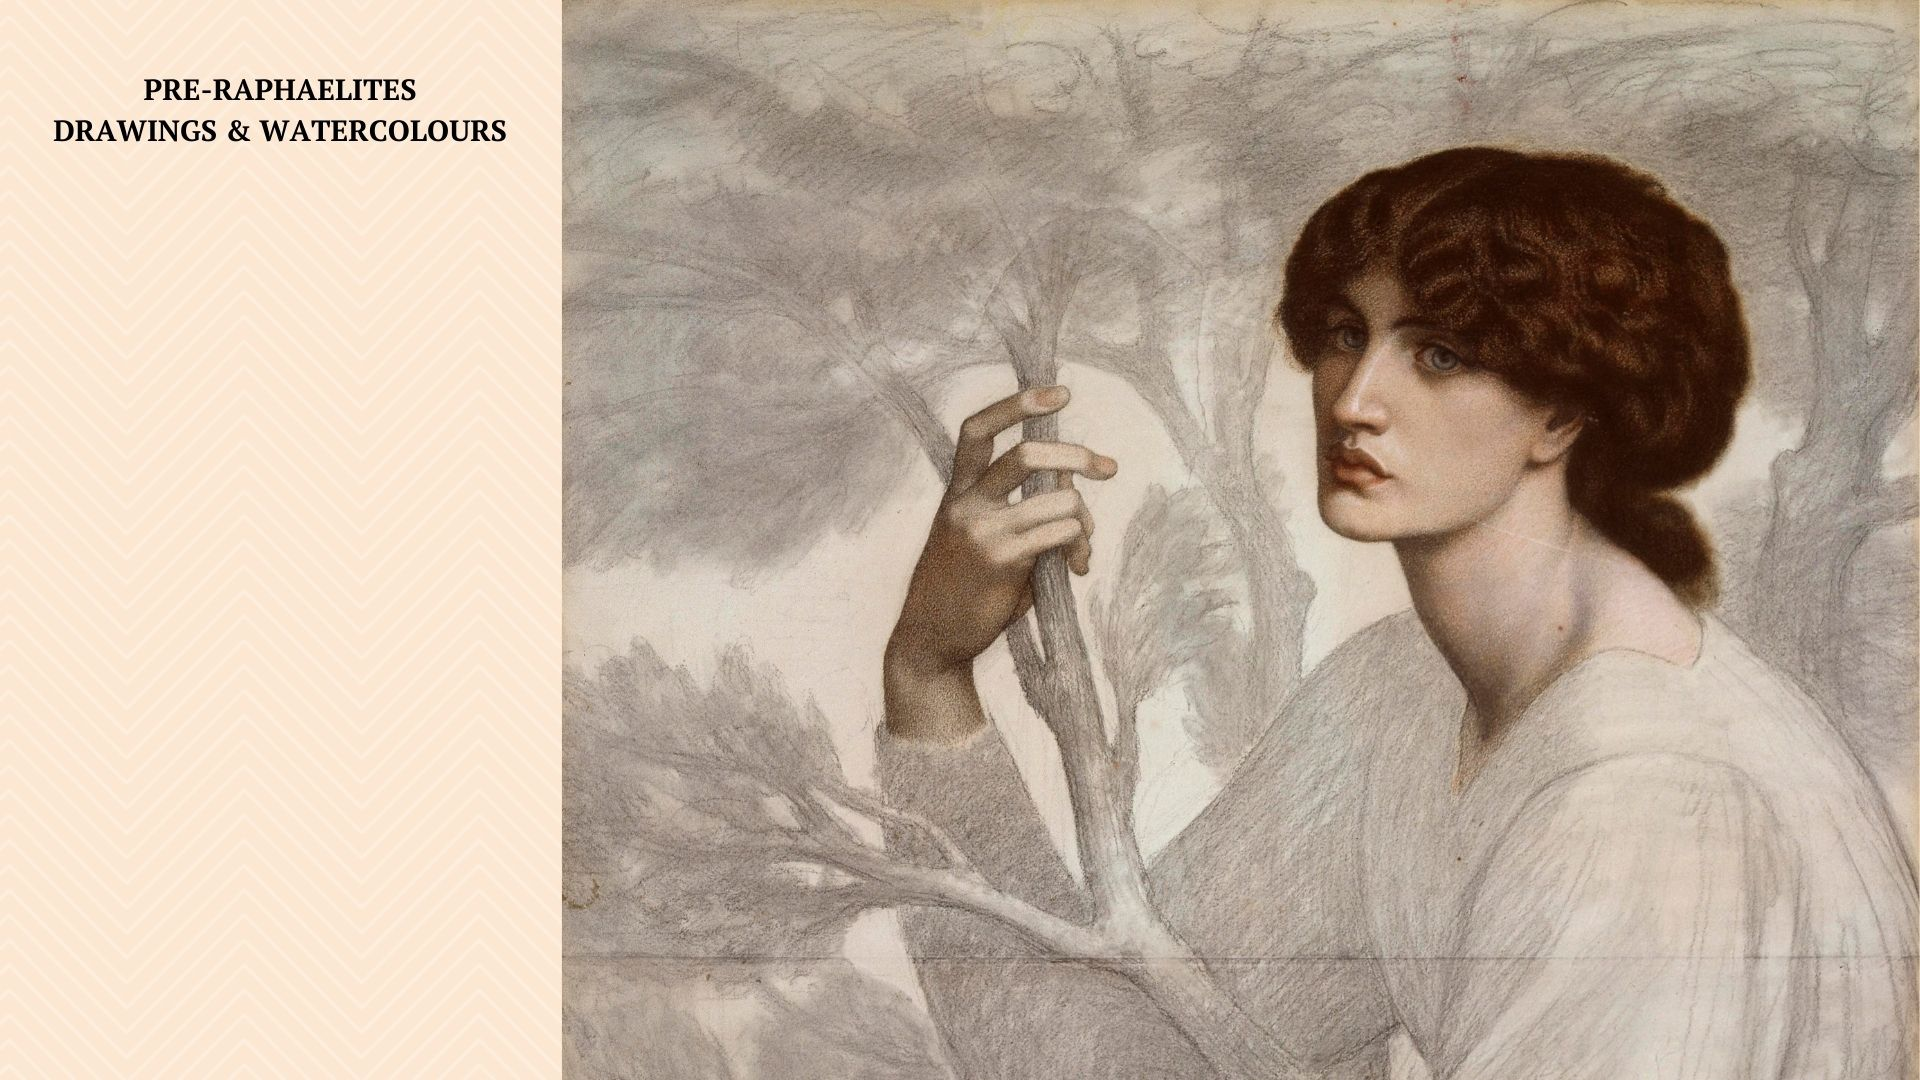 A chalk drawing of a women in a white dress holding a branch. A caption on the left states: PRE-RAPHAELITES DRAWINGS & WATERCOLOURS